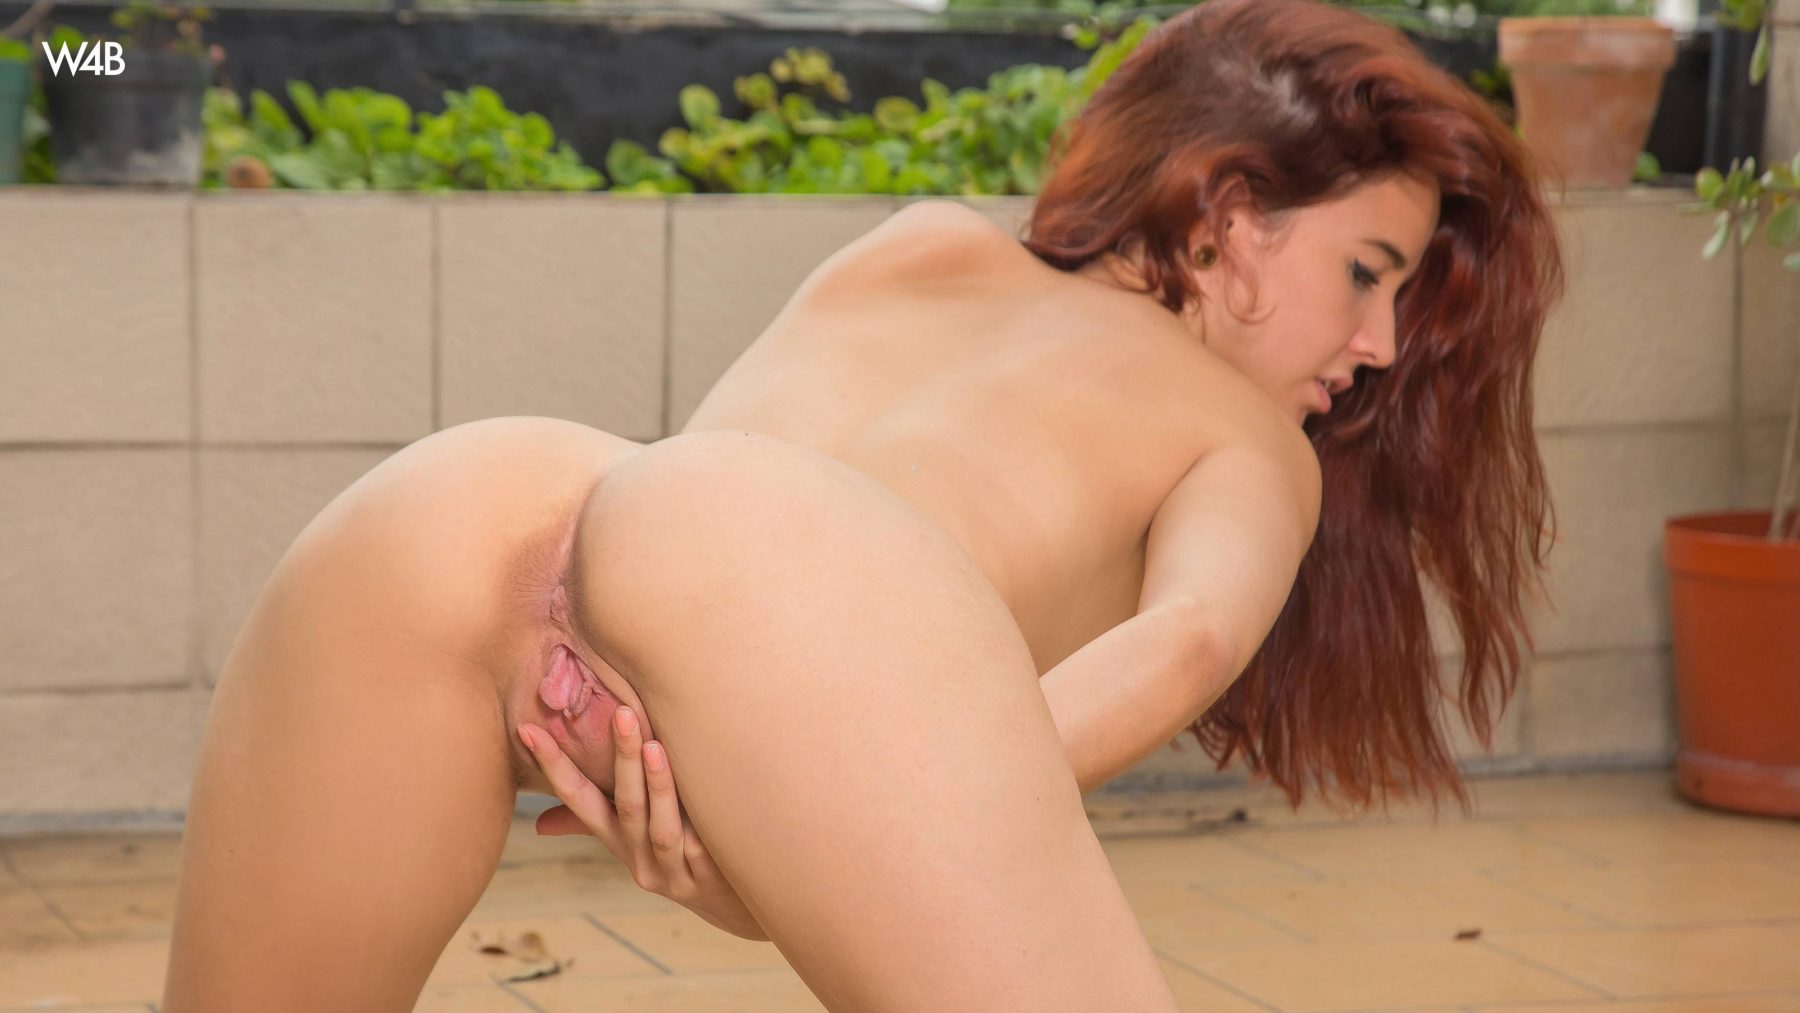 image Nude redhead with nice tits and ass is whipped in bdsm dungeon